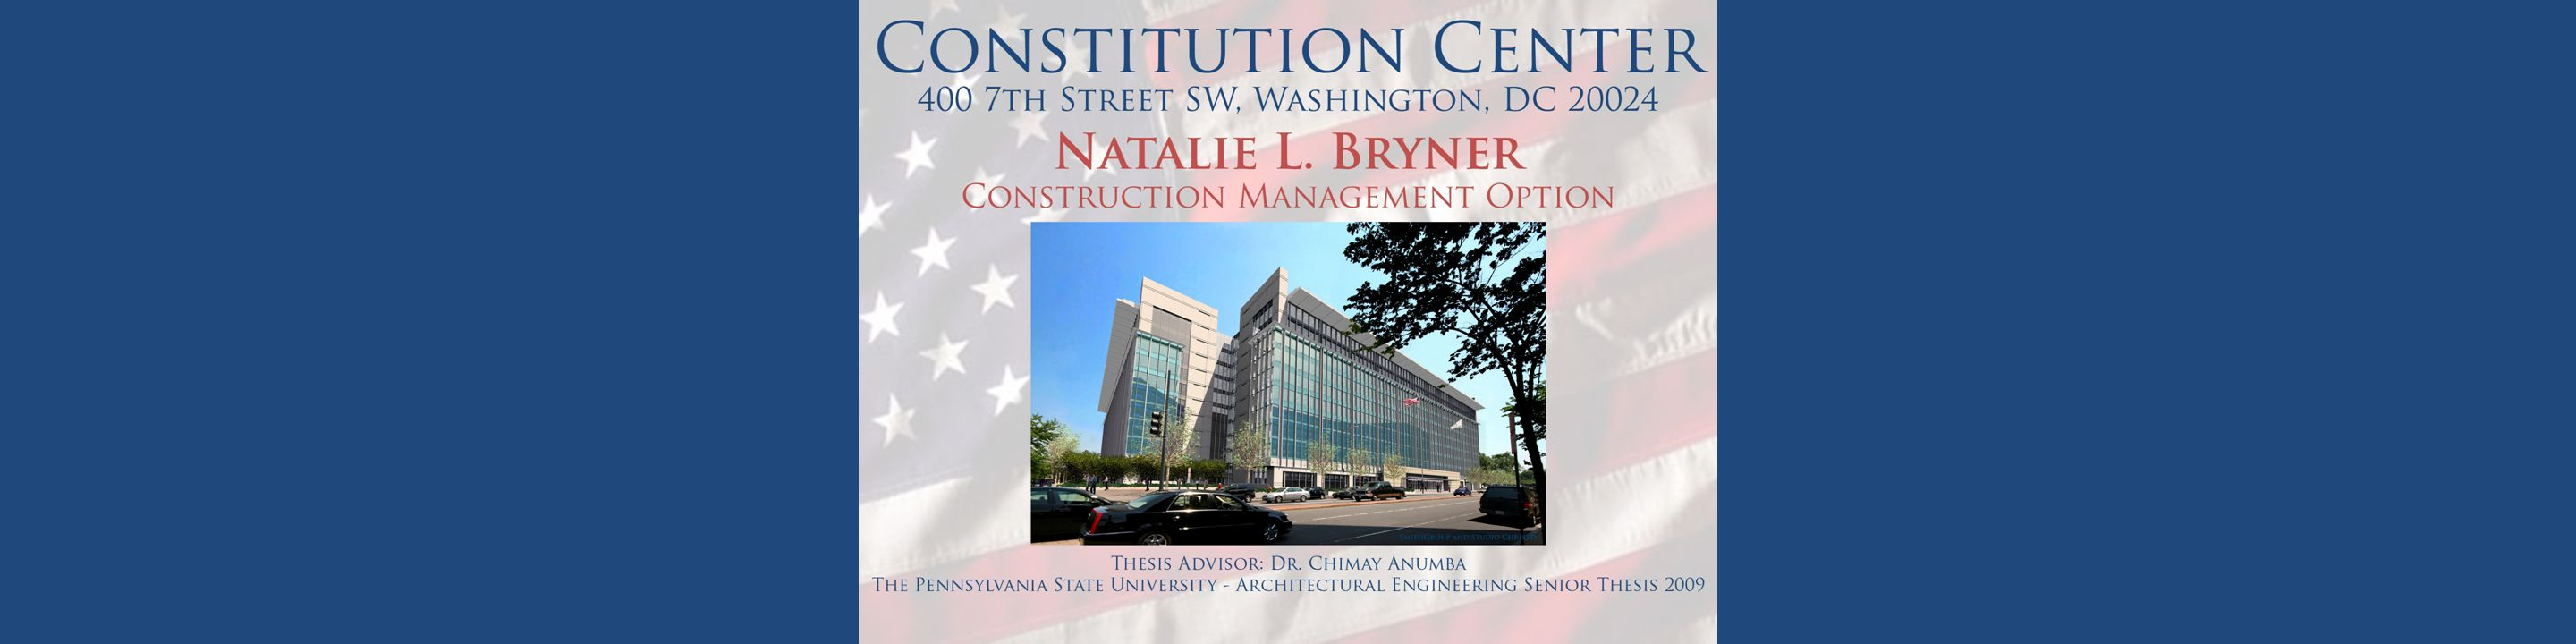 Presentation Outline Natalie Bryner Constitution Center Construction Management Option 400 7th Street SE, Washington, DC 20024 Overview of Curtain Wall Nearly 5,000 curtain wall panels Both Streetside and Courtyard sides Storefront Panels – 5' by 12' by 13' – 1,100 to 1,300 pounds each Levels 2 to 7 Panels – 5' by 23' – 2,300 to 2,500 pounds Levels 8 to 10 – 5' by 10' – 500 to 600 pounds.